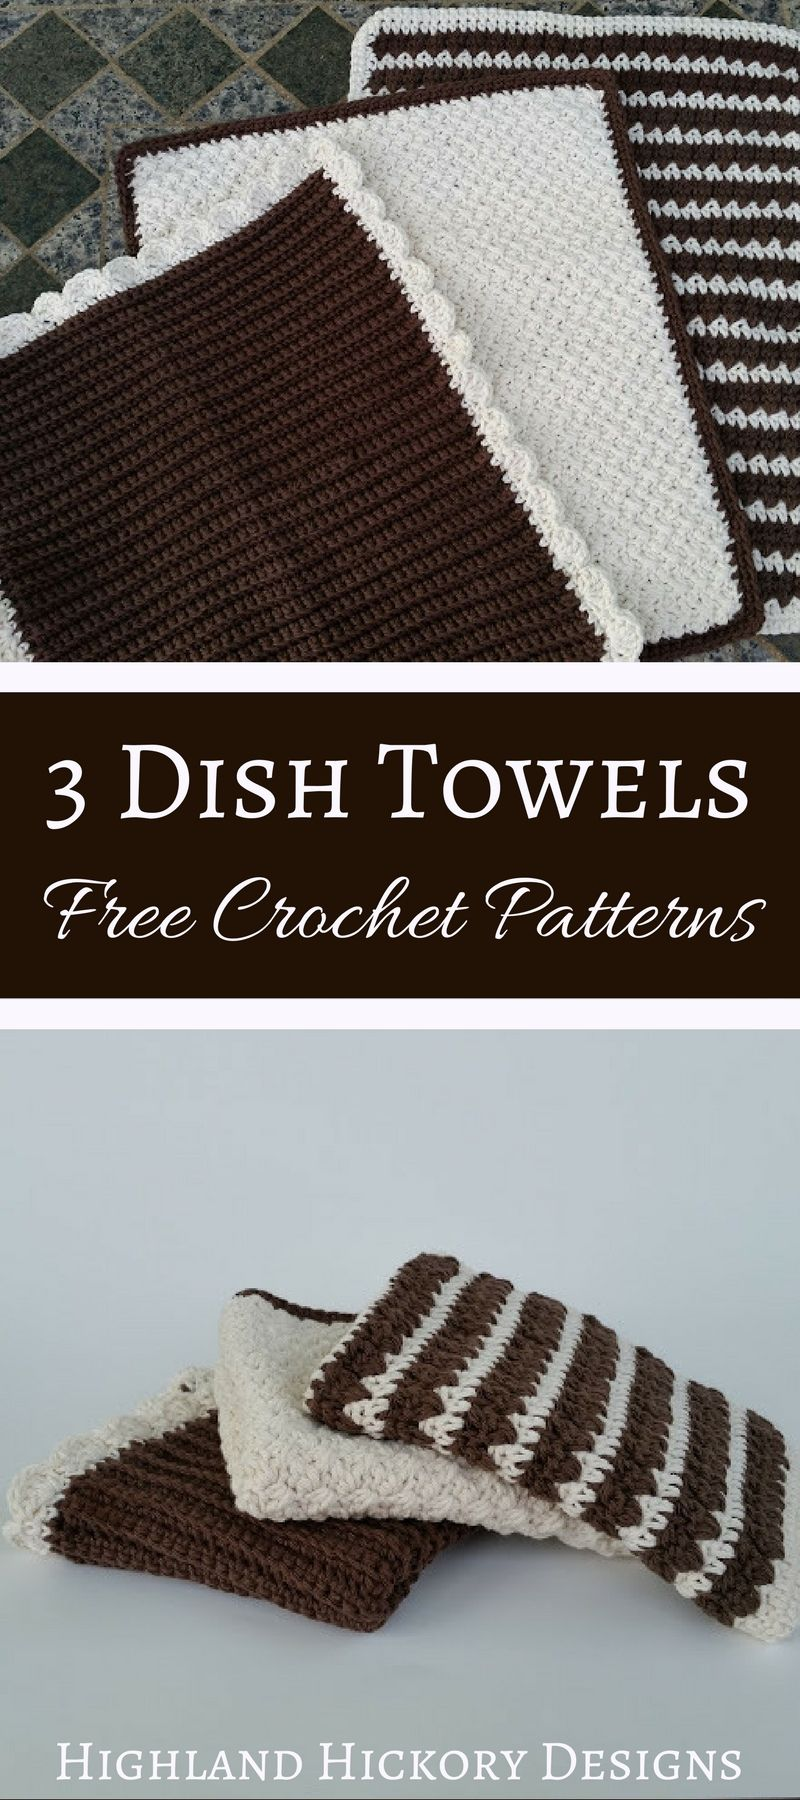 Dish Towels or Dish Mat - Free Crochet Pattern | Pinterest ...